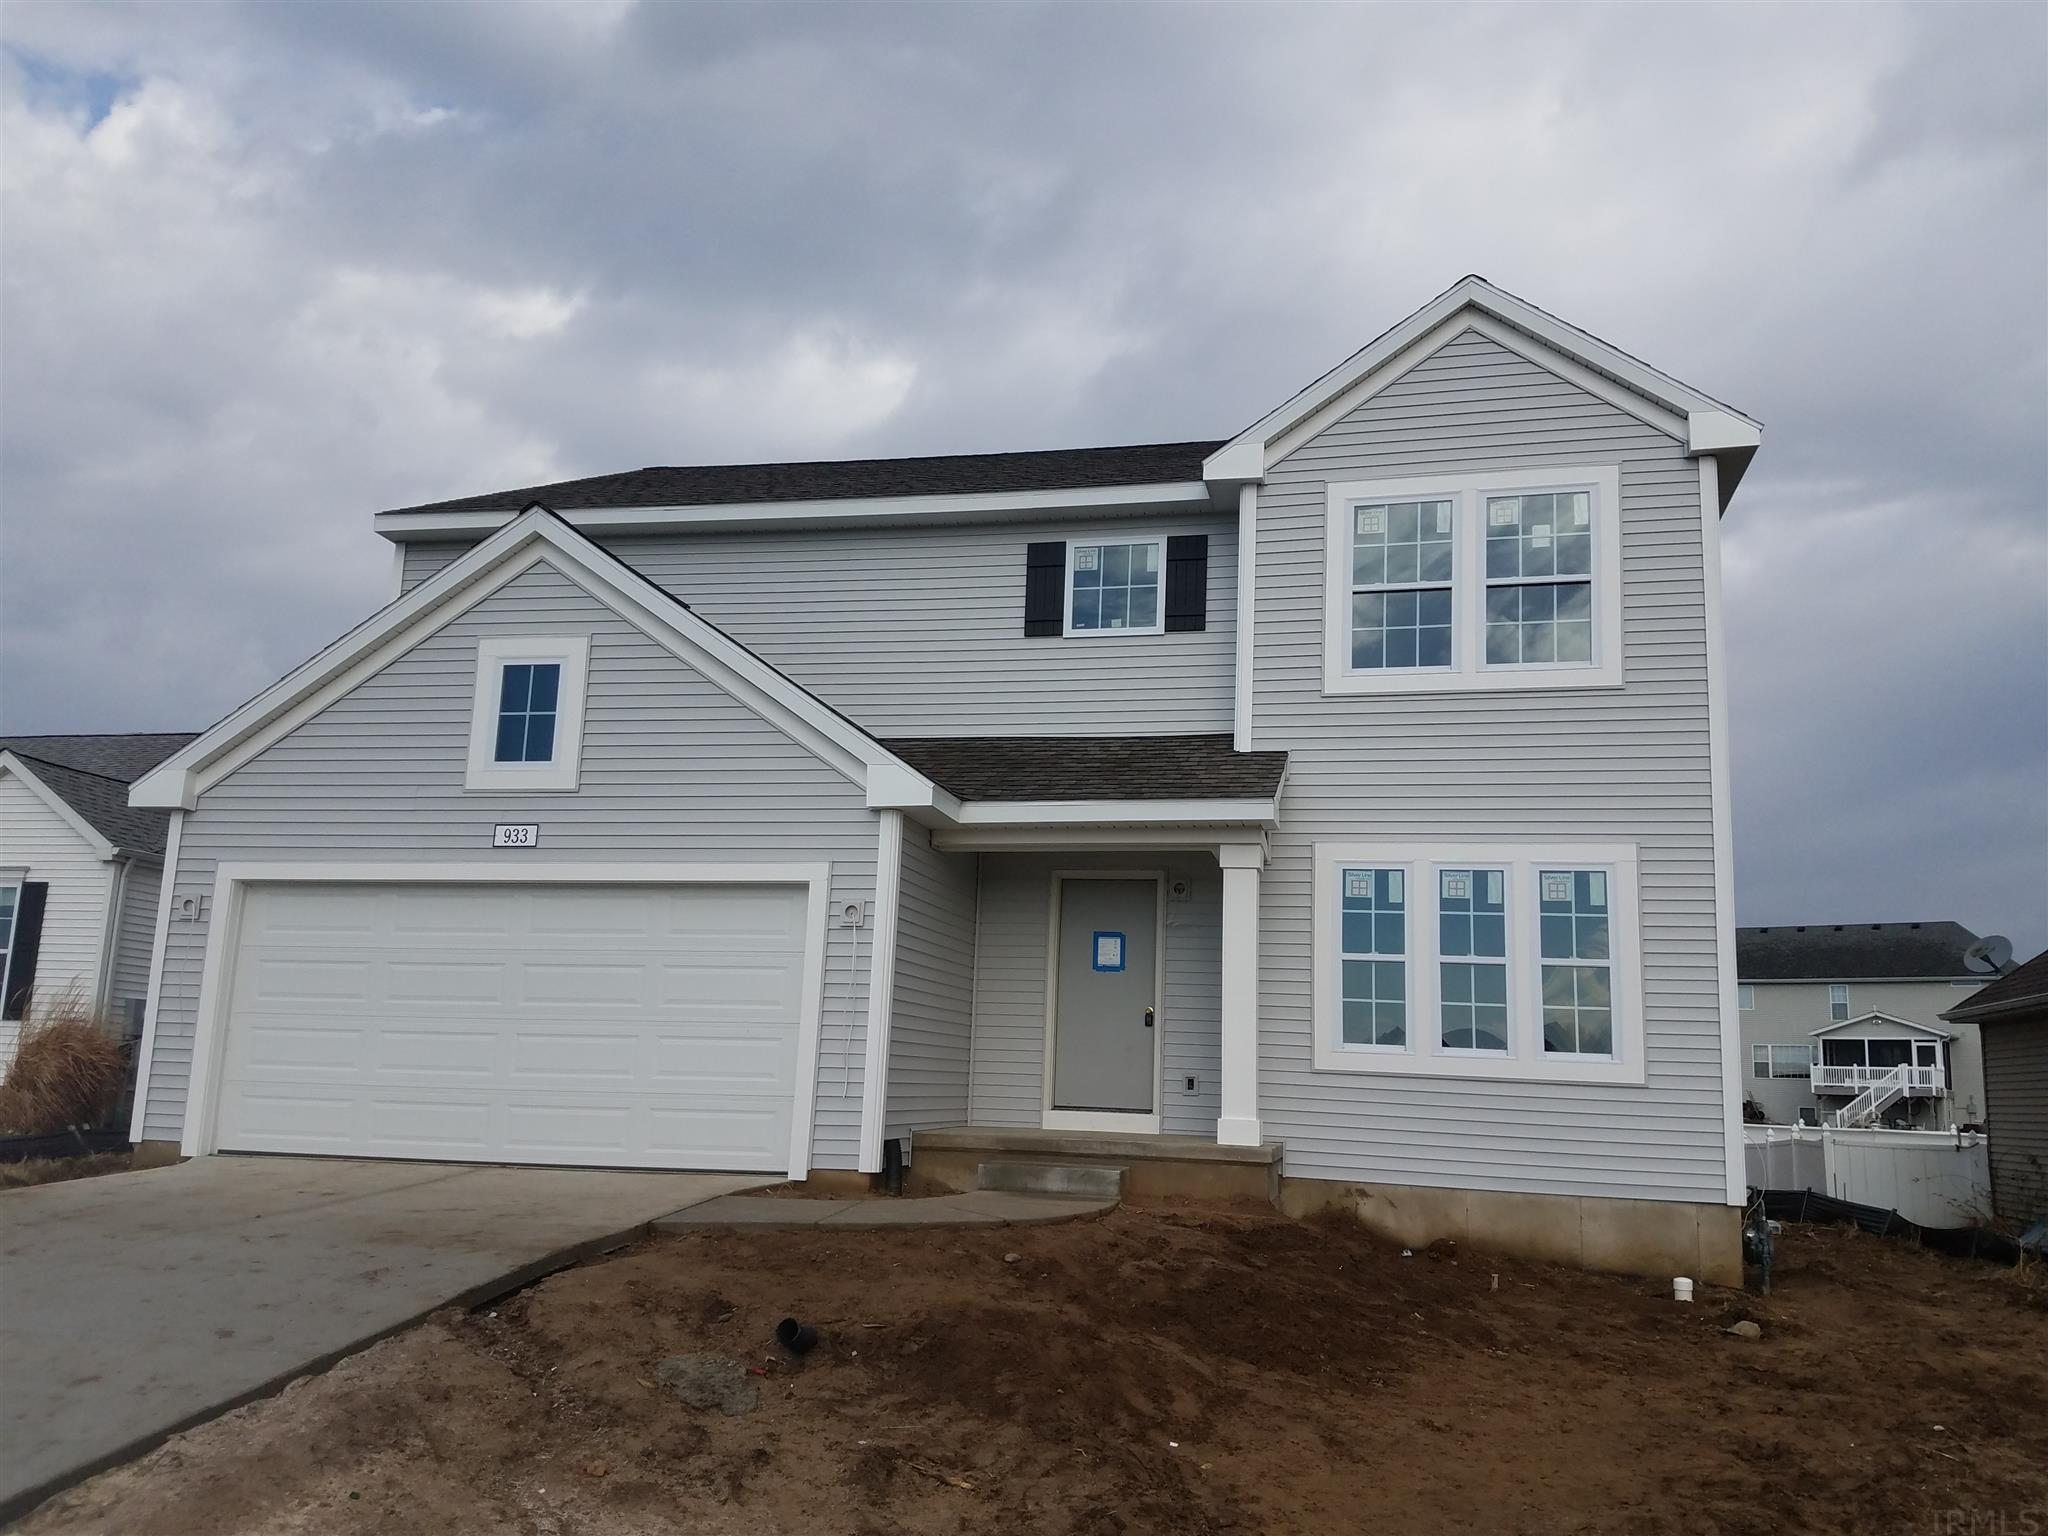 933 Vawter South Bend, IN 46614